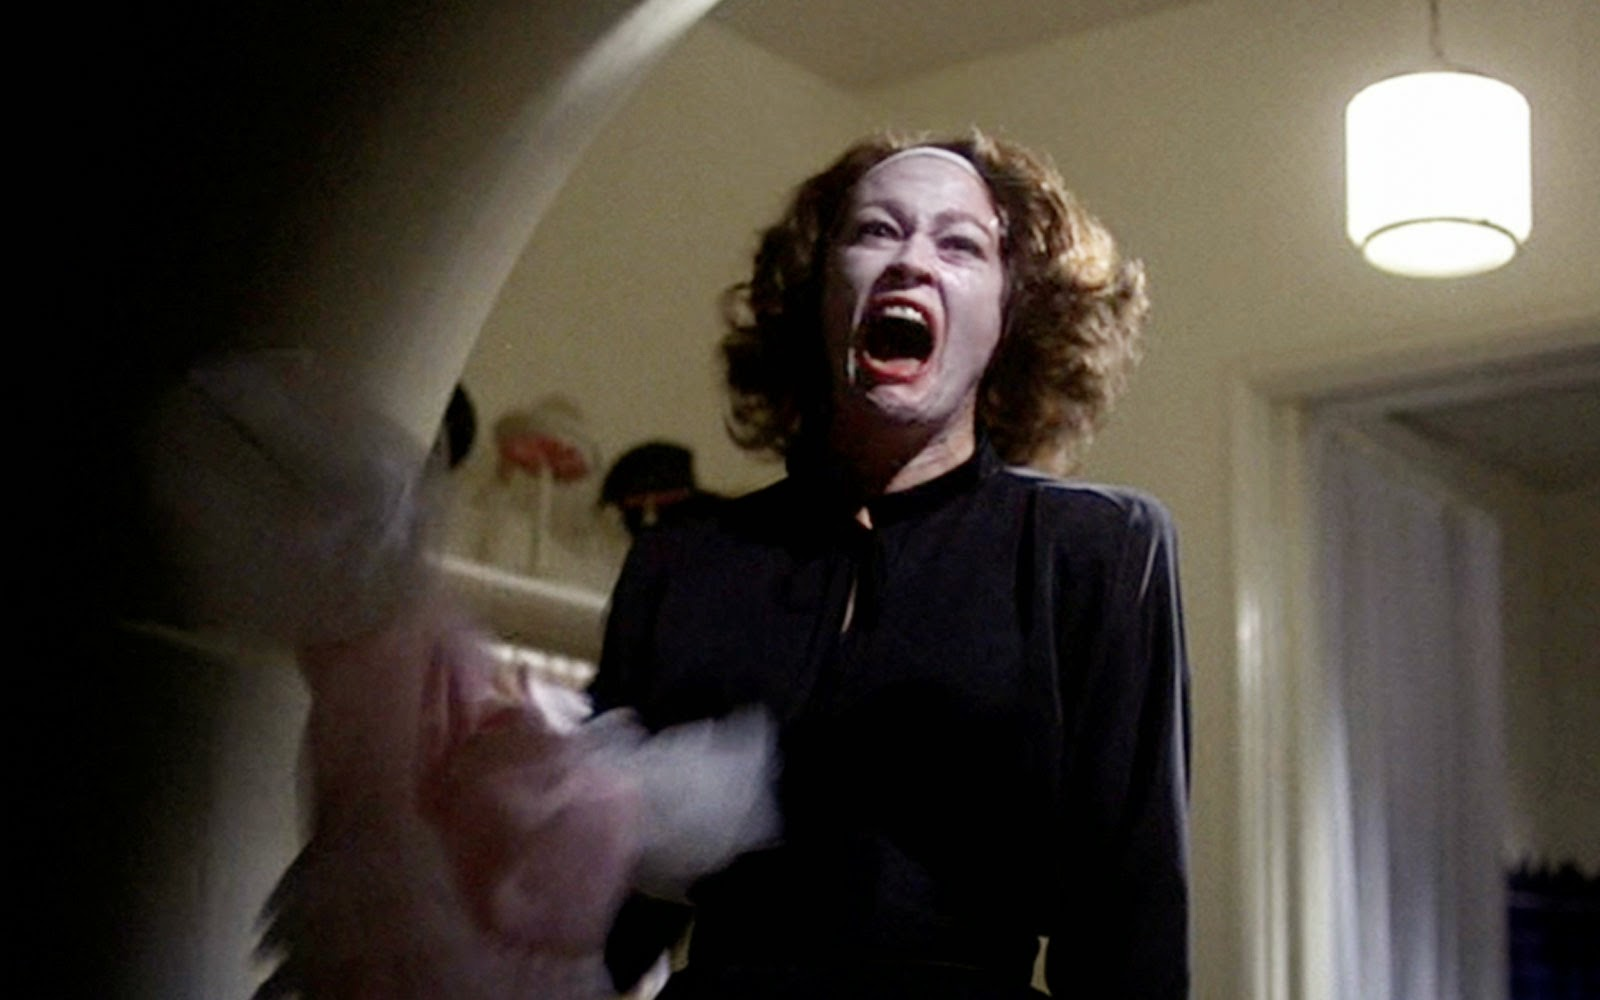 The Shadow in Film: Joan Crawford, Mommie Dearest. Faye Dunaway portrays the legendary actress in this biographical drama that portray's Crawford's abusive relationship with her daughter. In the movie she is is a driven actress and compulsively clean housekeeper who tries to control the lives of those around her as tightly as she controls herself.